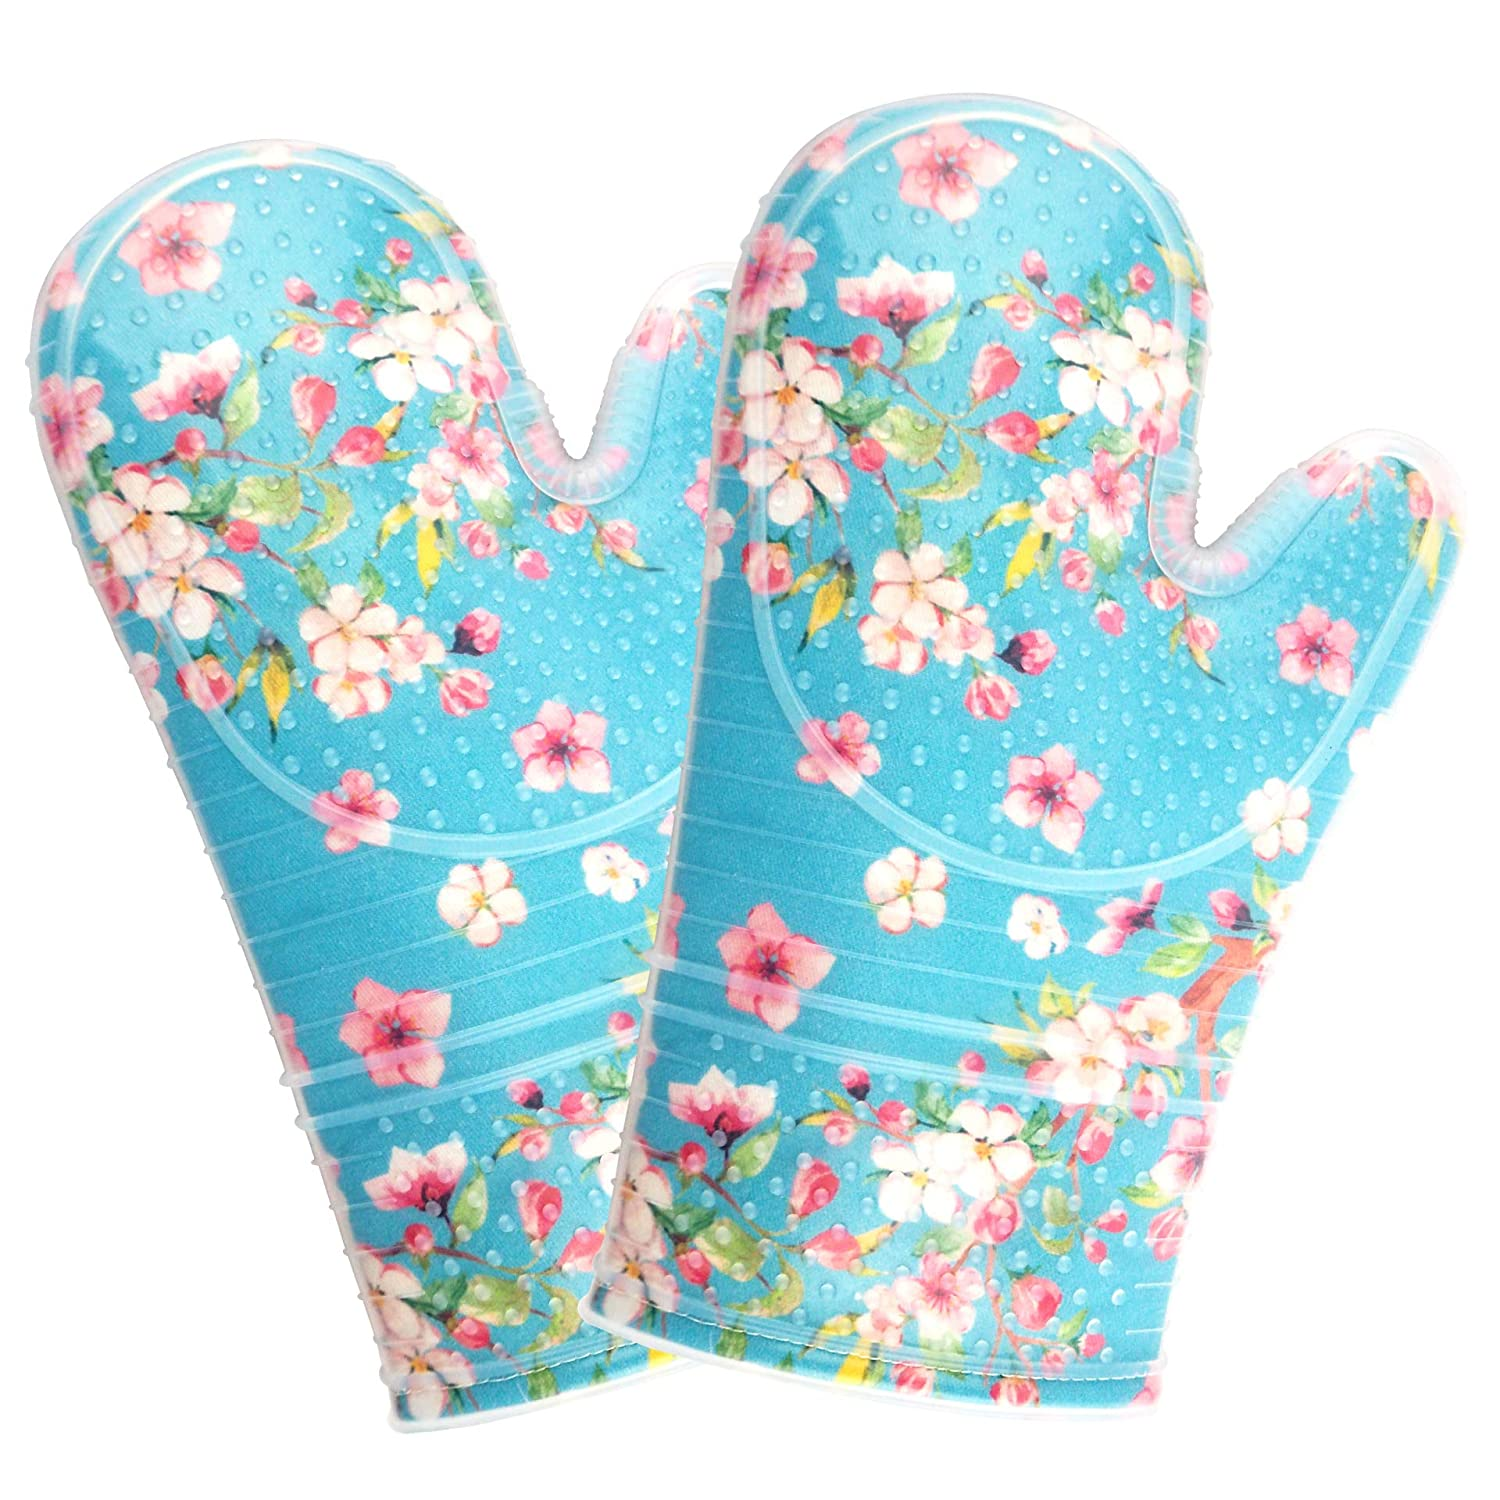 FERLLYMI Oven Mitts with Transparent Clear Silicone Heat Resistant to 500 F Set of 2 pcs, Nice Printing Cotton Lining, Oven Gloves and Pot Holders for Kitchen Cooking (Plum Blossom)